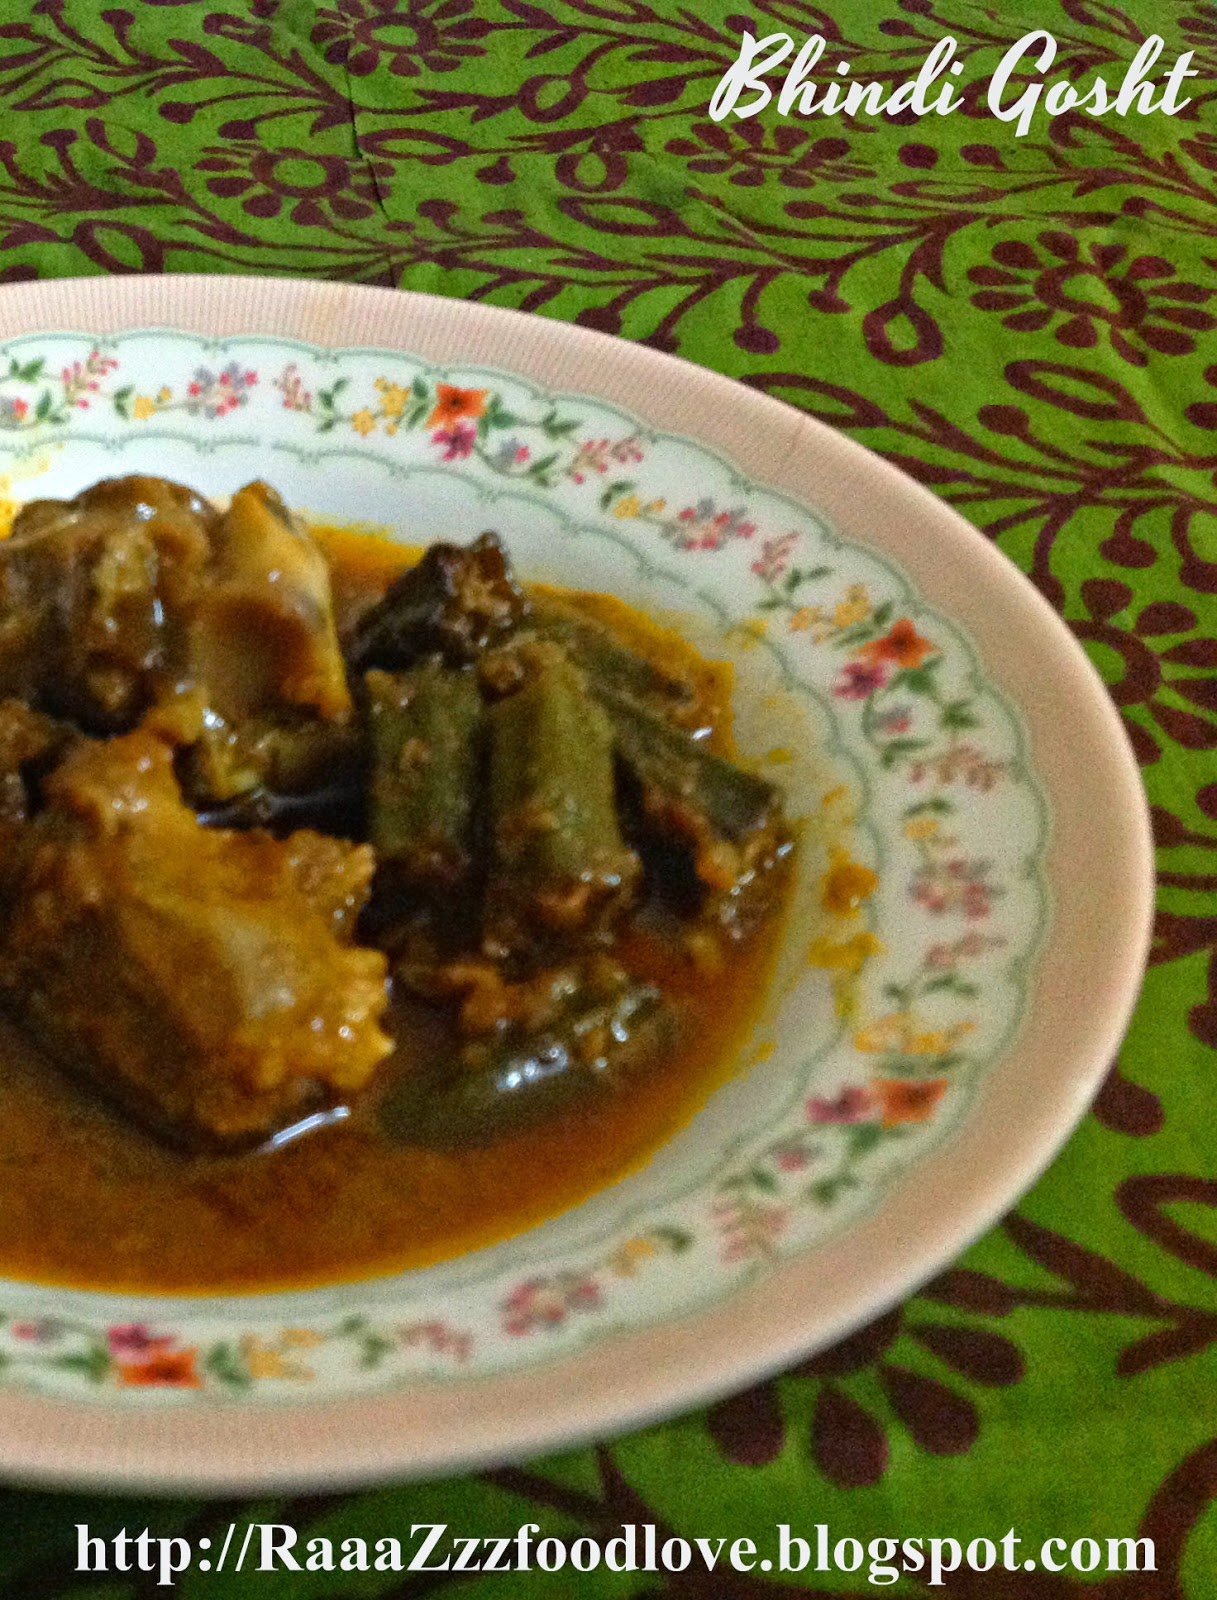 http://raaazzzfoodlove.blogspot.in/2014/08/bhindi-gosht-okra-and-mutton-curry.html